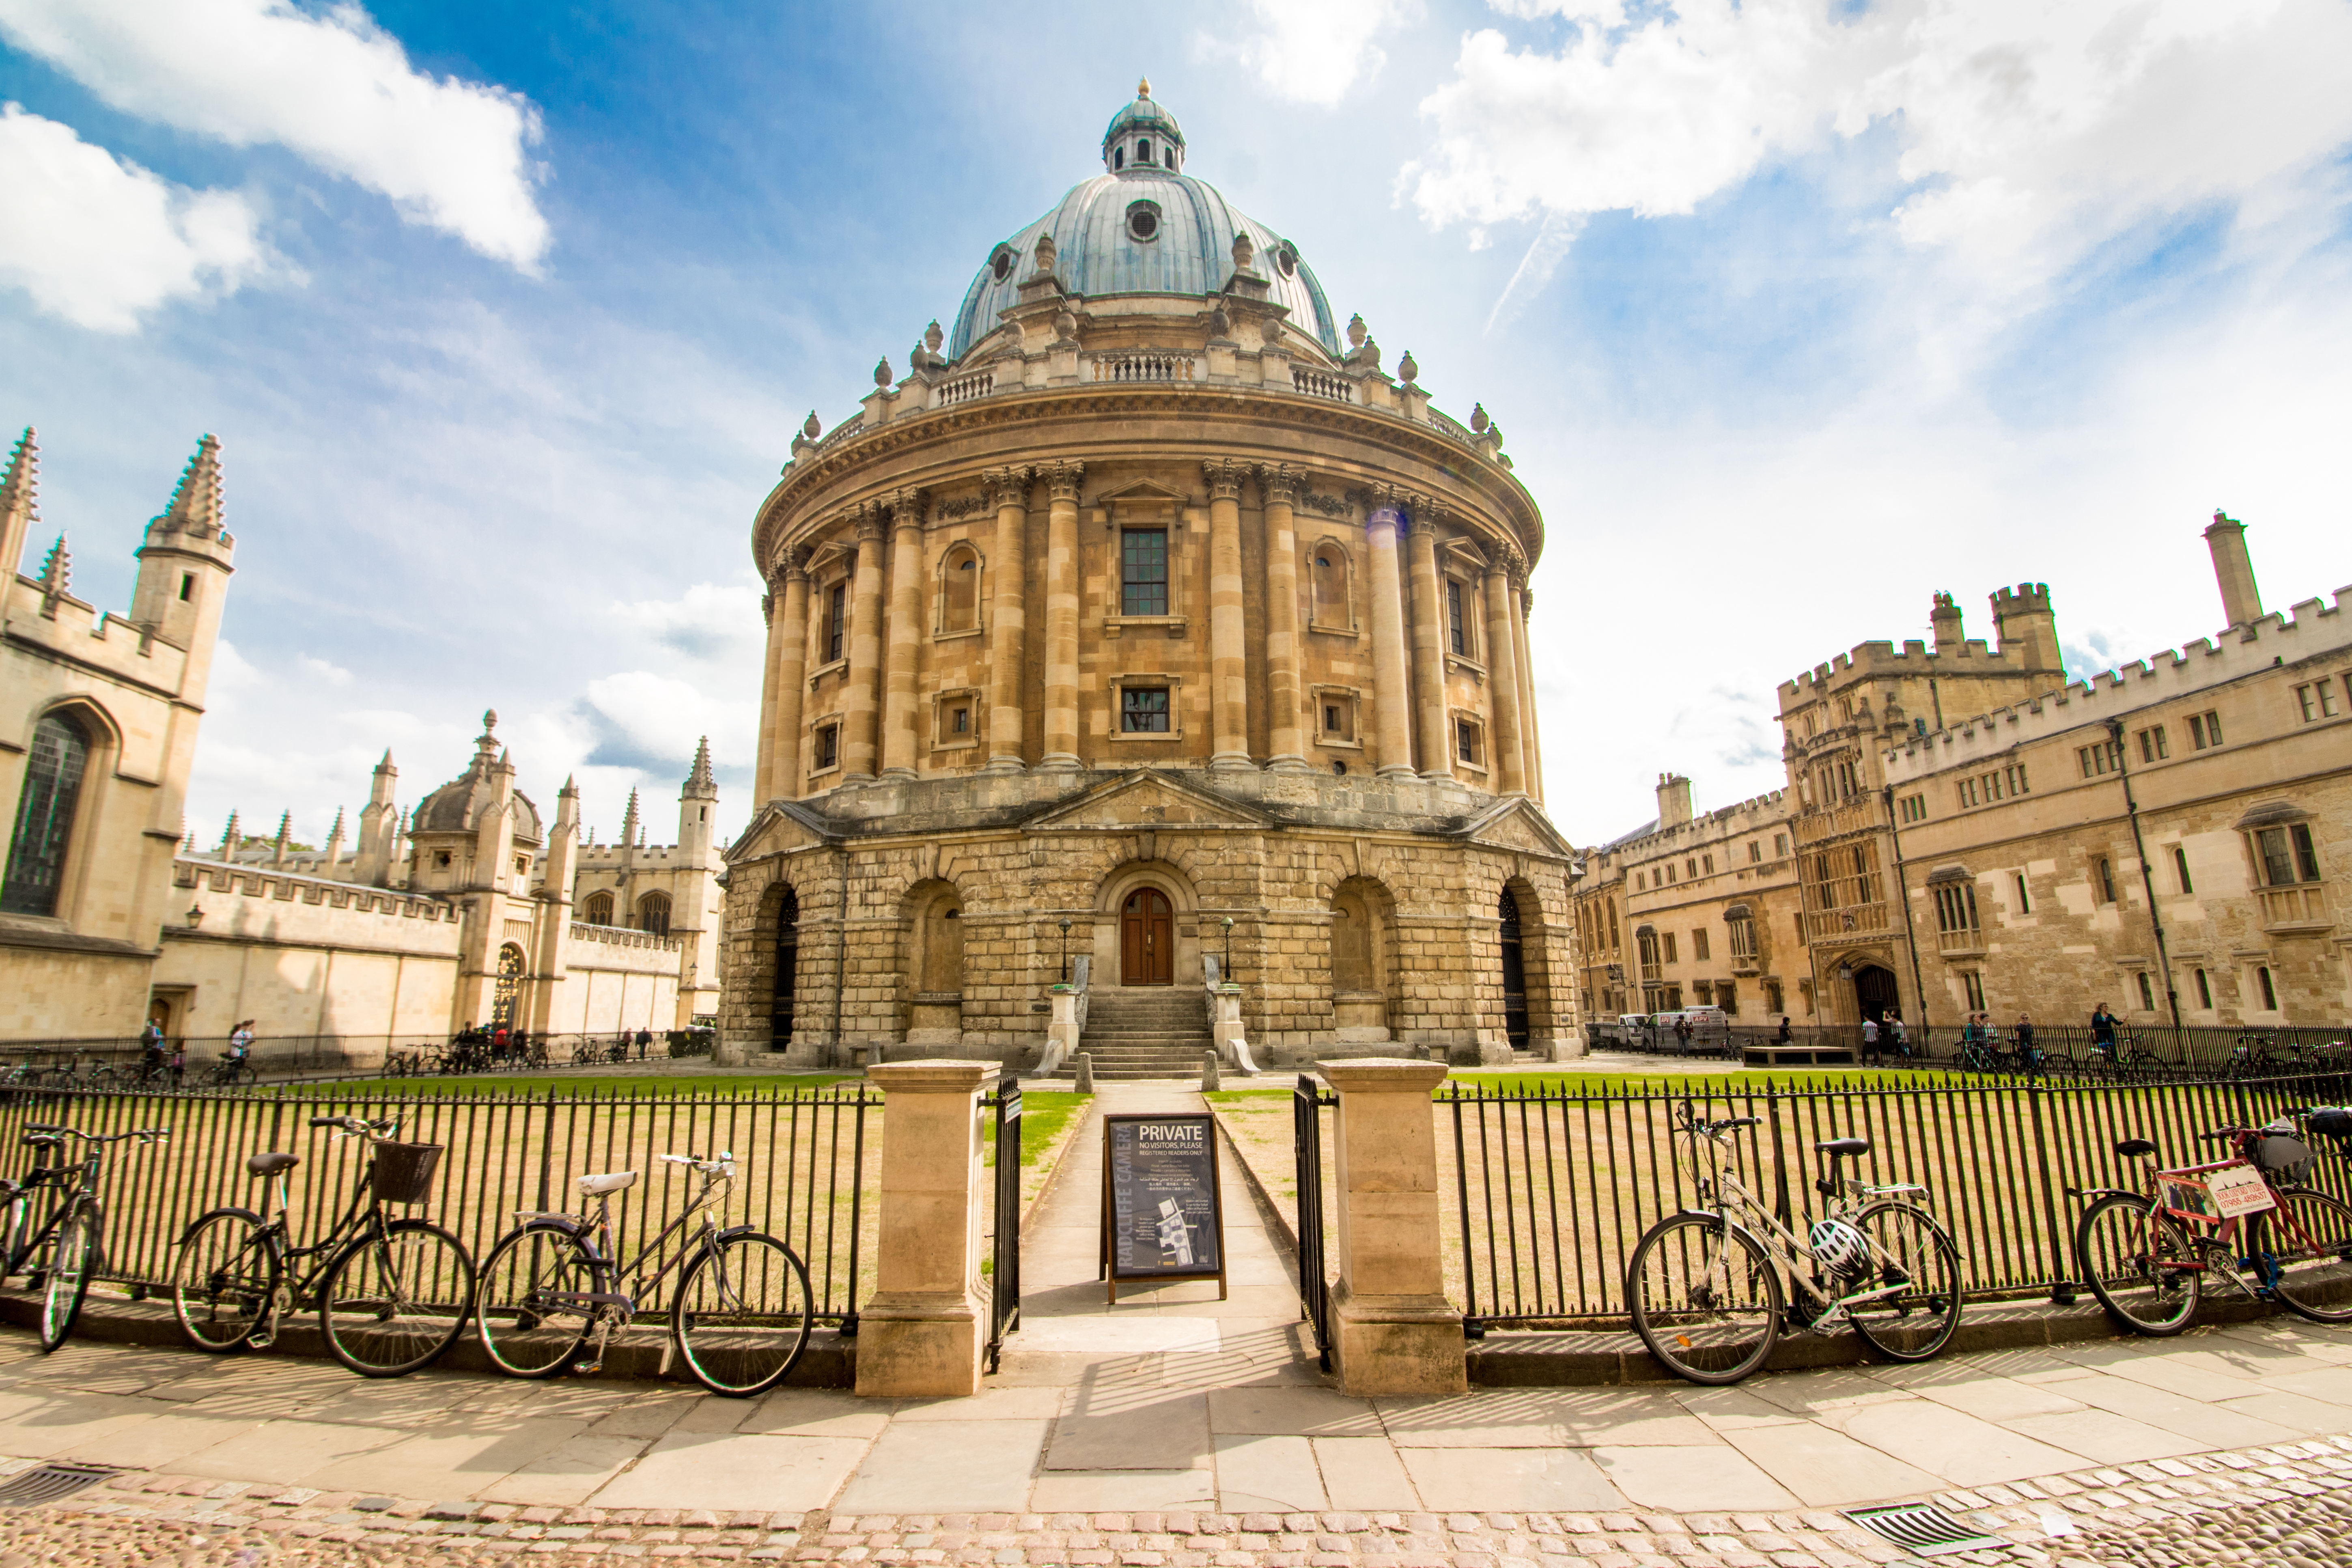 Radcliffe Camera. Bicycles lined up in front of old historic building with a green lawn in front. Castle. Blue skies. How to Spend One Day in Oxford: Best Things to Do. Oxford England. Oxford UK. Oxford University. 24 hours in Oxford. Oxford in One Day. Things to do in Oxford. Places to see in Oxford. Places to Visit in Oxford. What to see in Oxford. Things to see in Oxford. What to do in Oxford. Oxford attractions. Oxford top attractions. Oxford travel blog. Oxford travel guide. Oxford Castle. Turl Street. Oxford bookshops. Bridge of Sighs. Bodleian Library. Radcliffe Camera. University Church of St Mary. Oxford punting. Click through to read more...